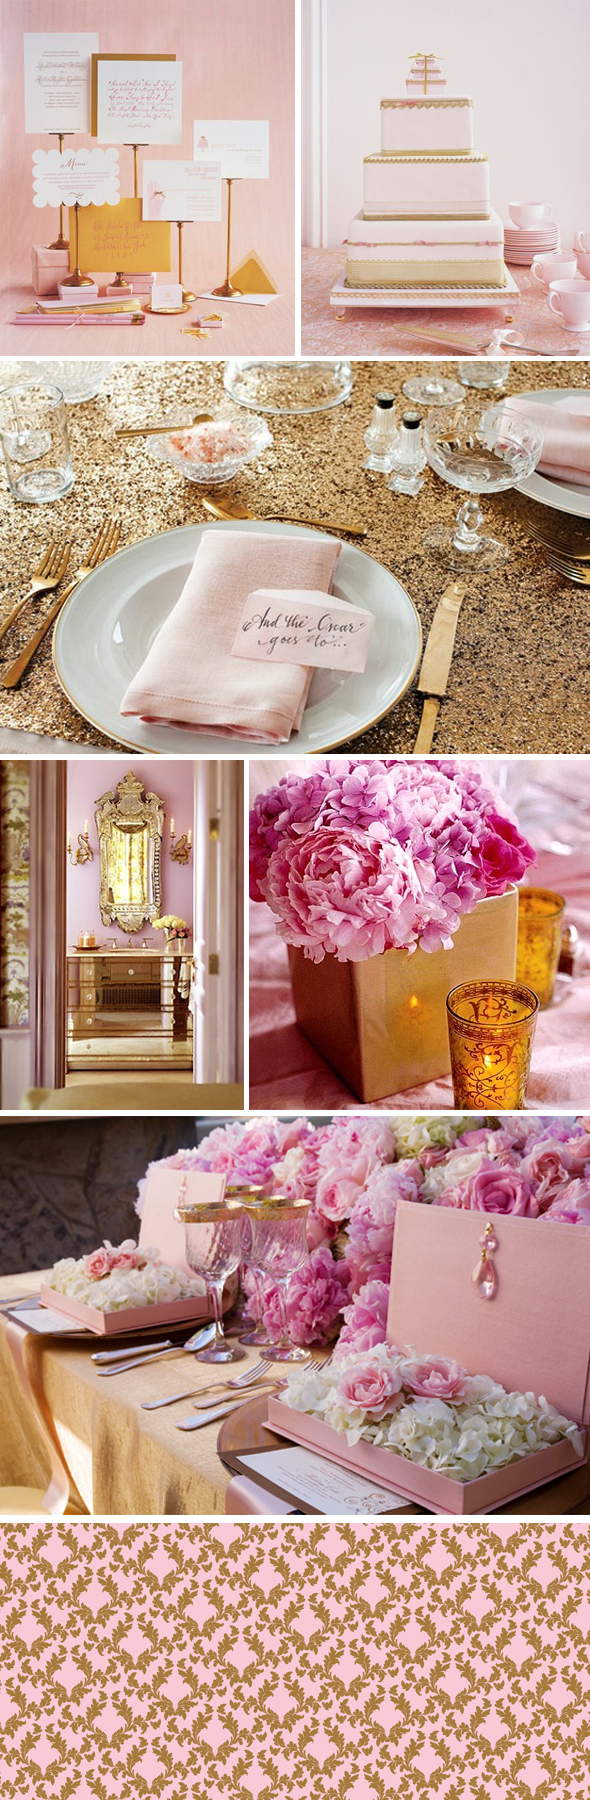 pink and gold weddings Inspired by the Langham Hotel Wallpaper Pattern